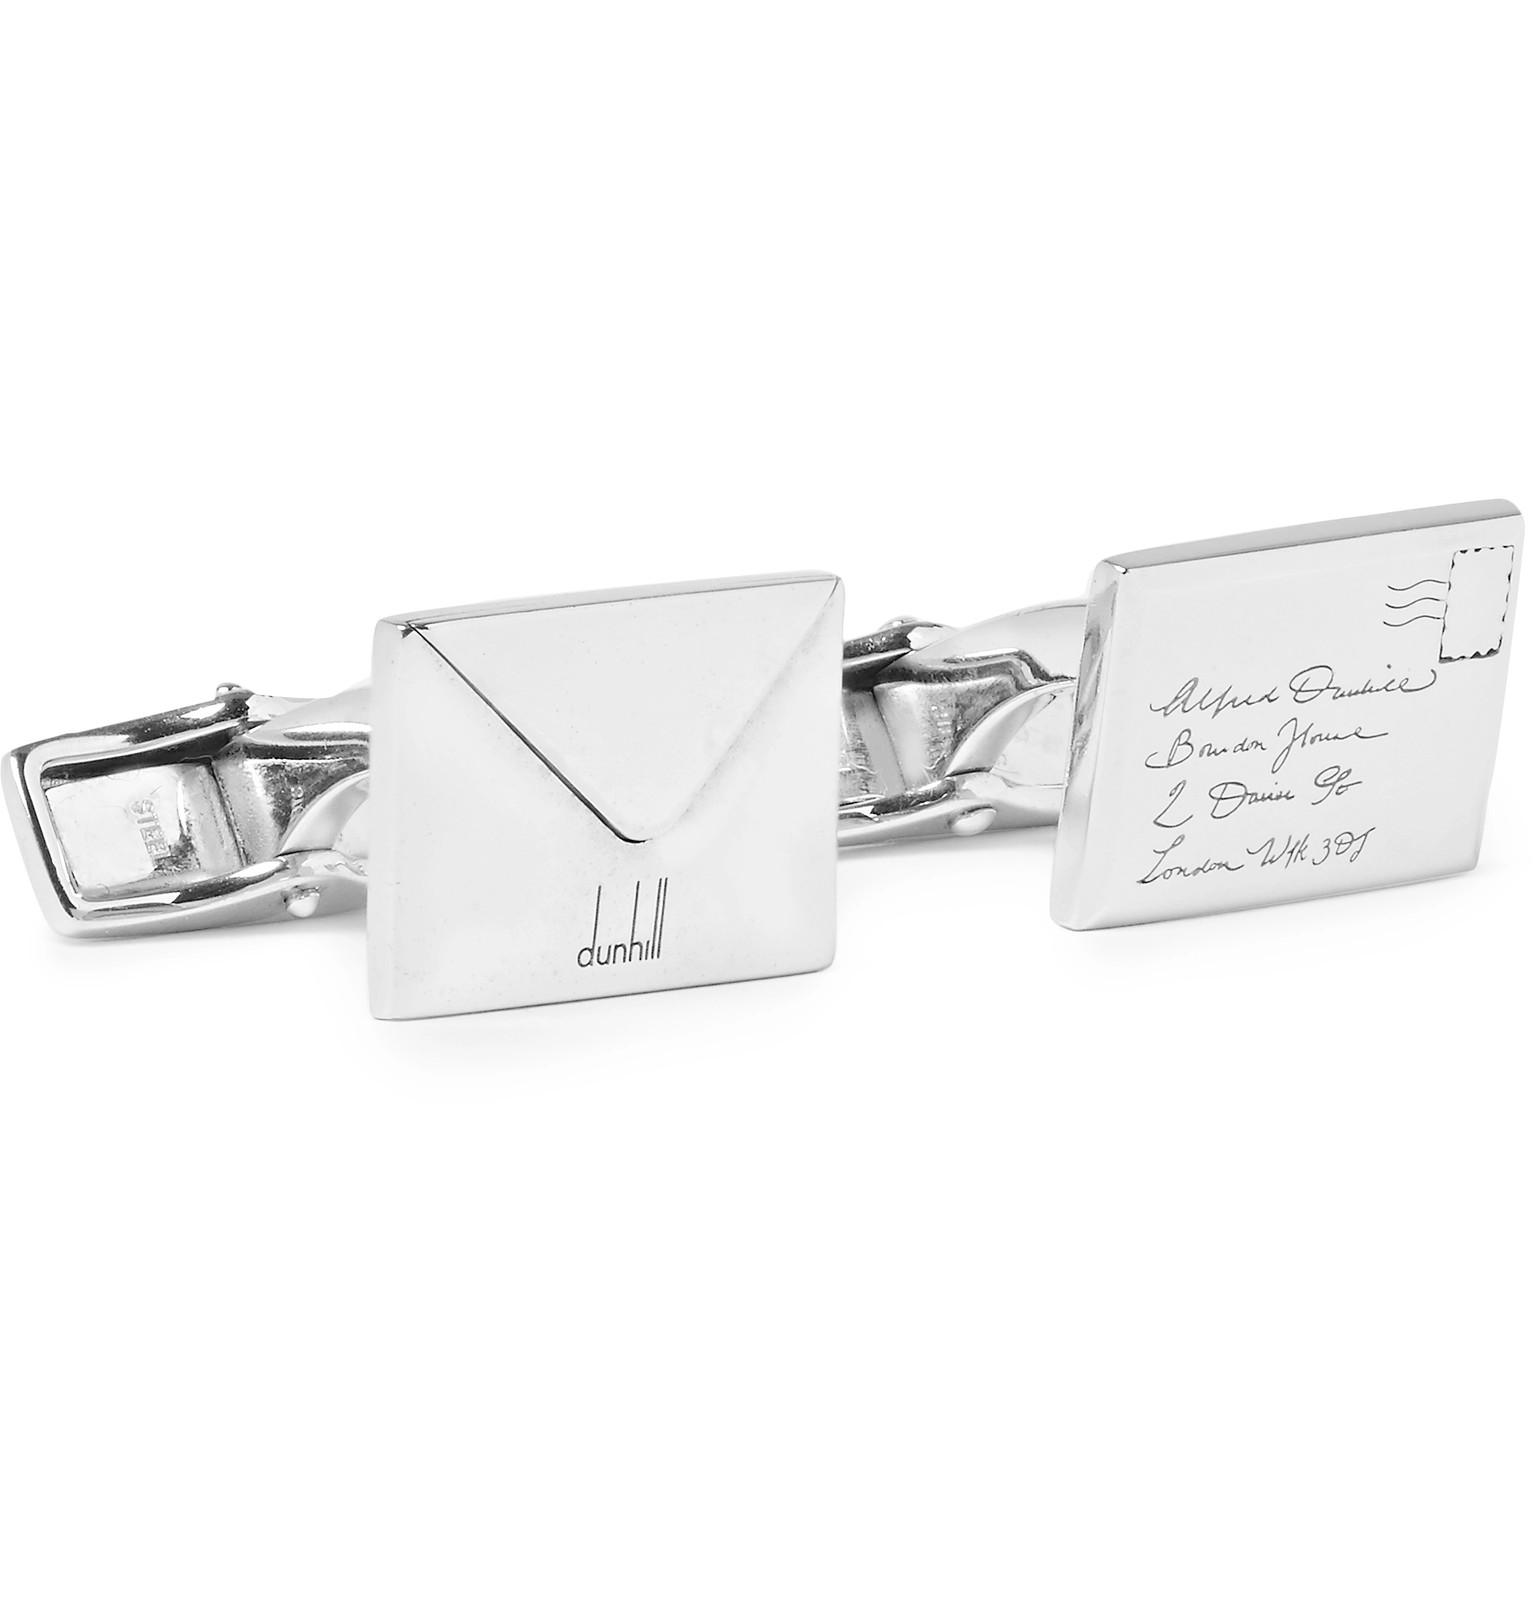 Dunhill Envelope Silver-tone Cufflinks - Silver